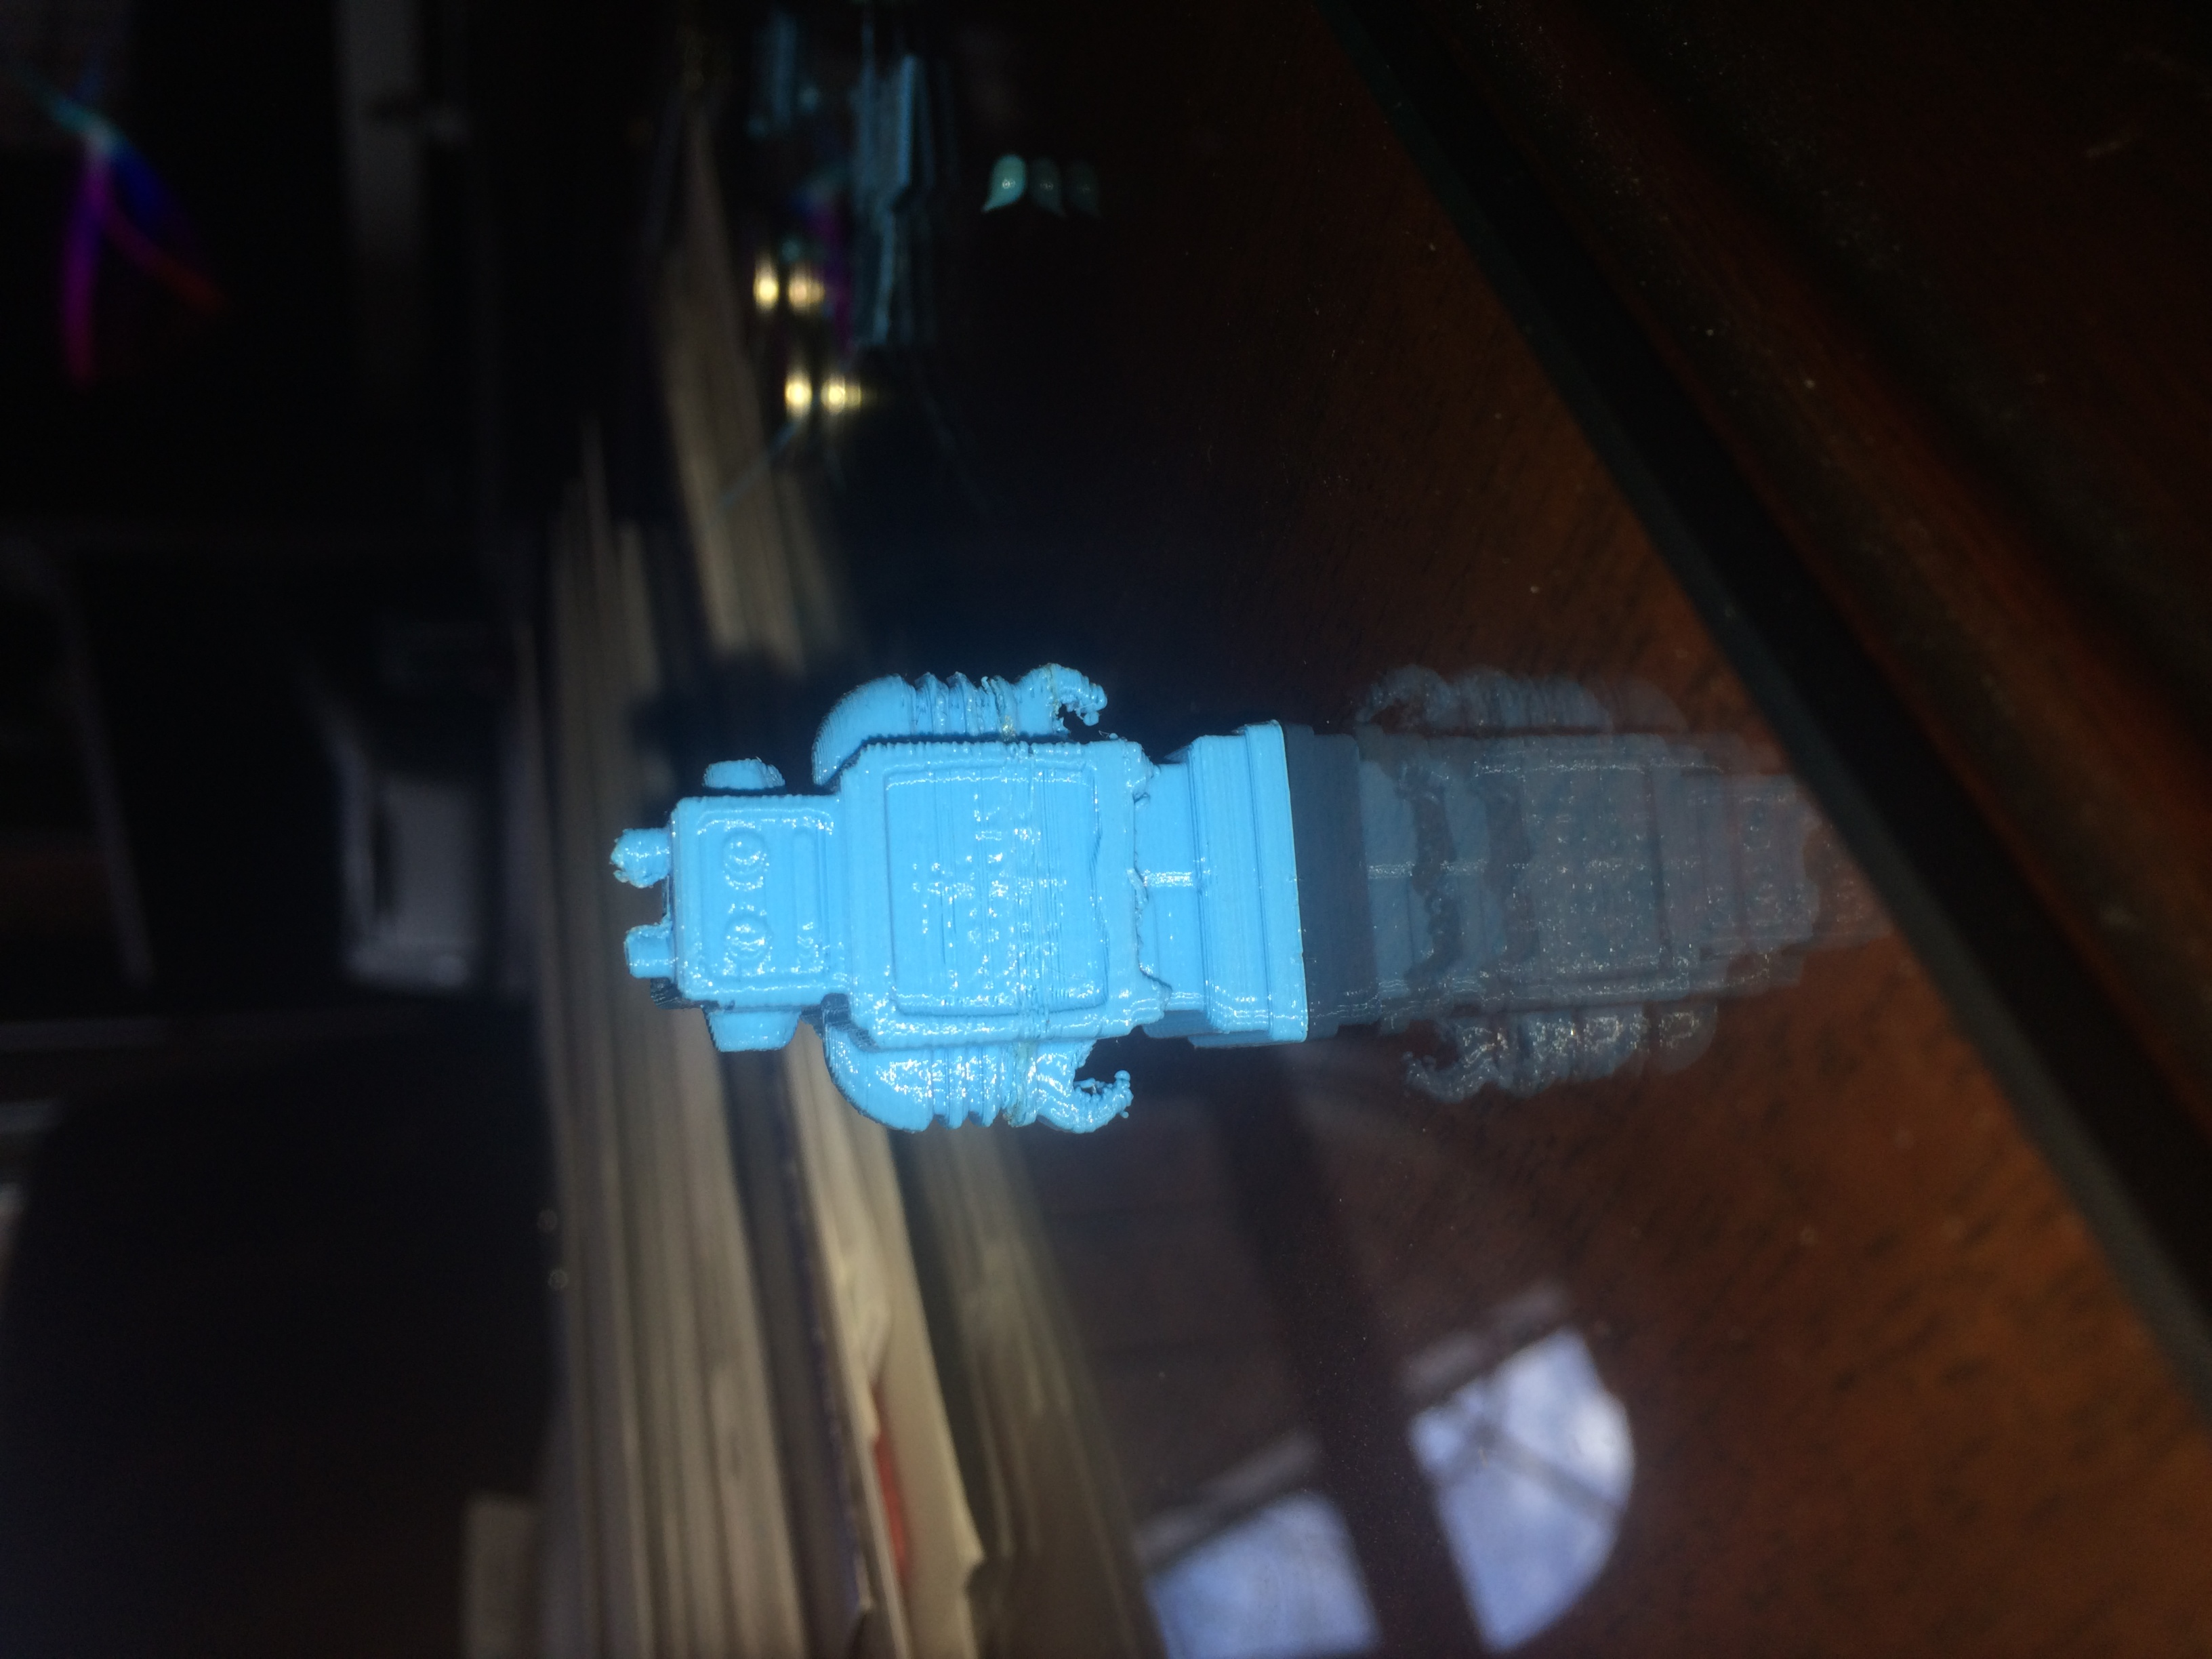 The results of the first print. There were uneven layers, and the hands barely took shape.